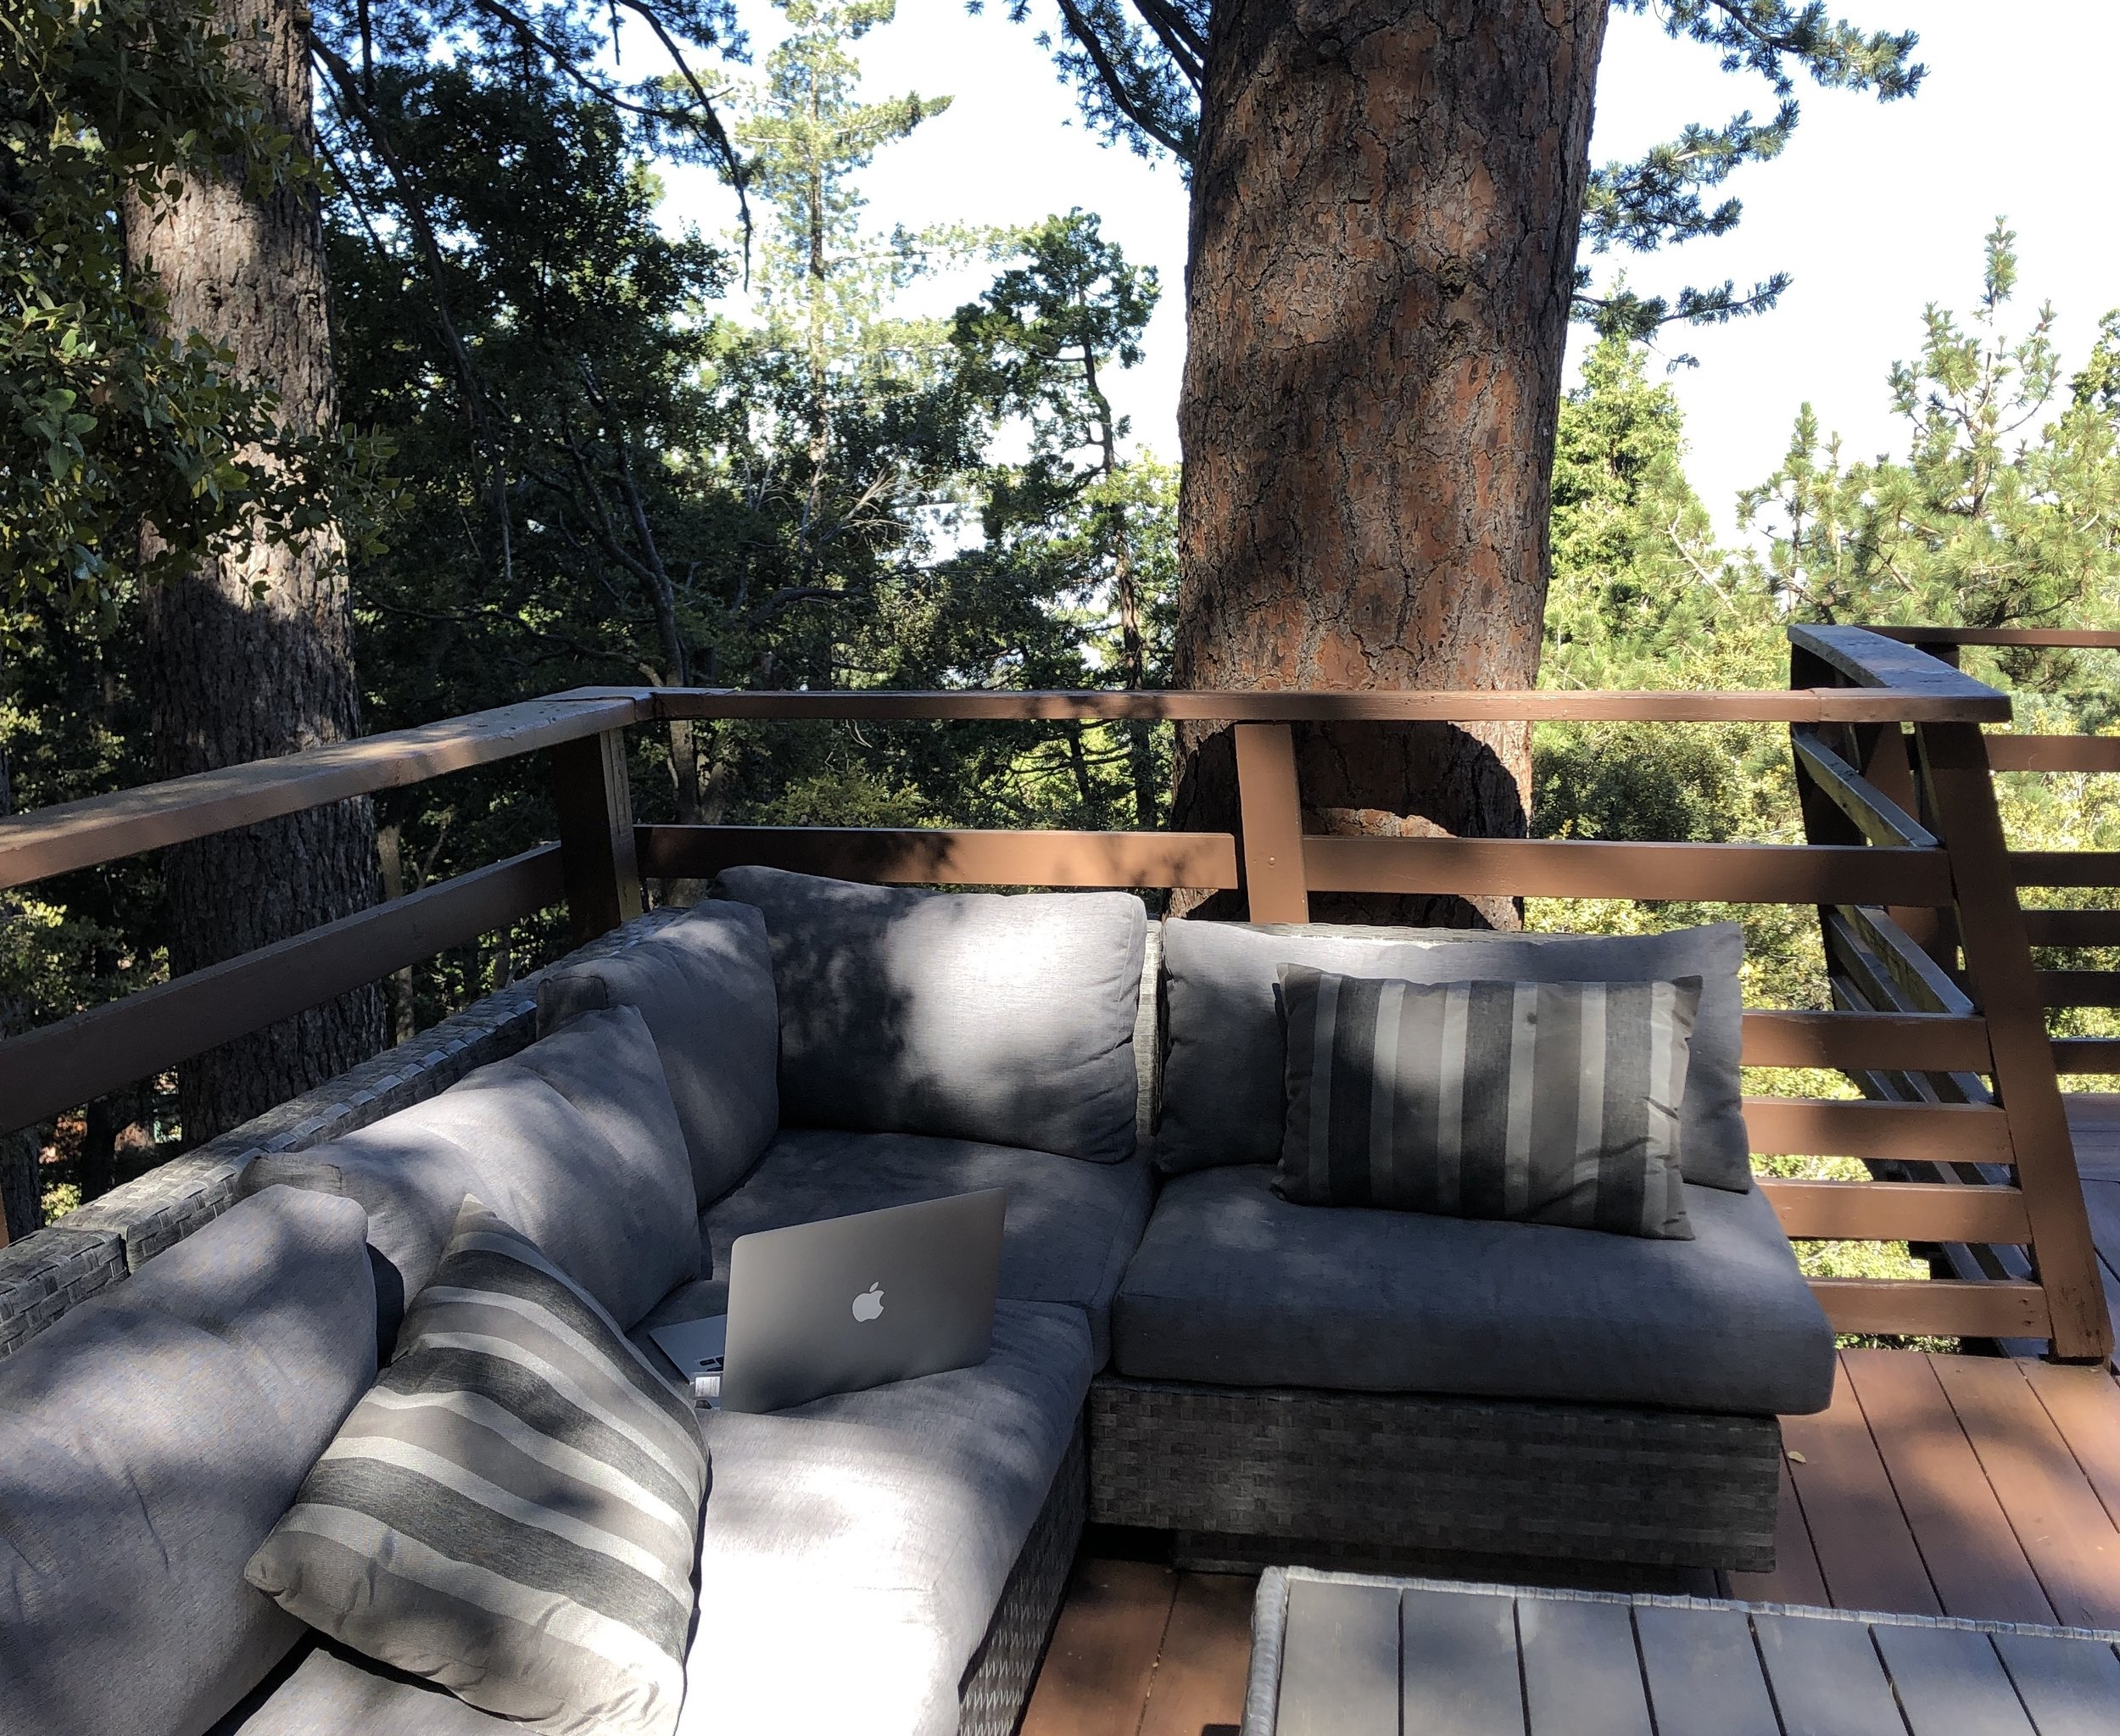 Beautiful day on the outdoor couch on the deck outside The Overlook.